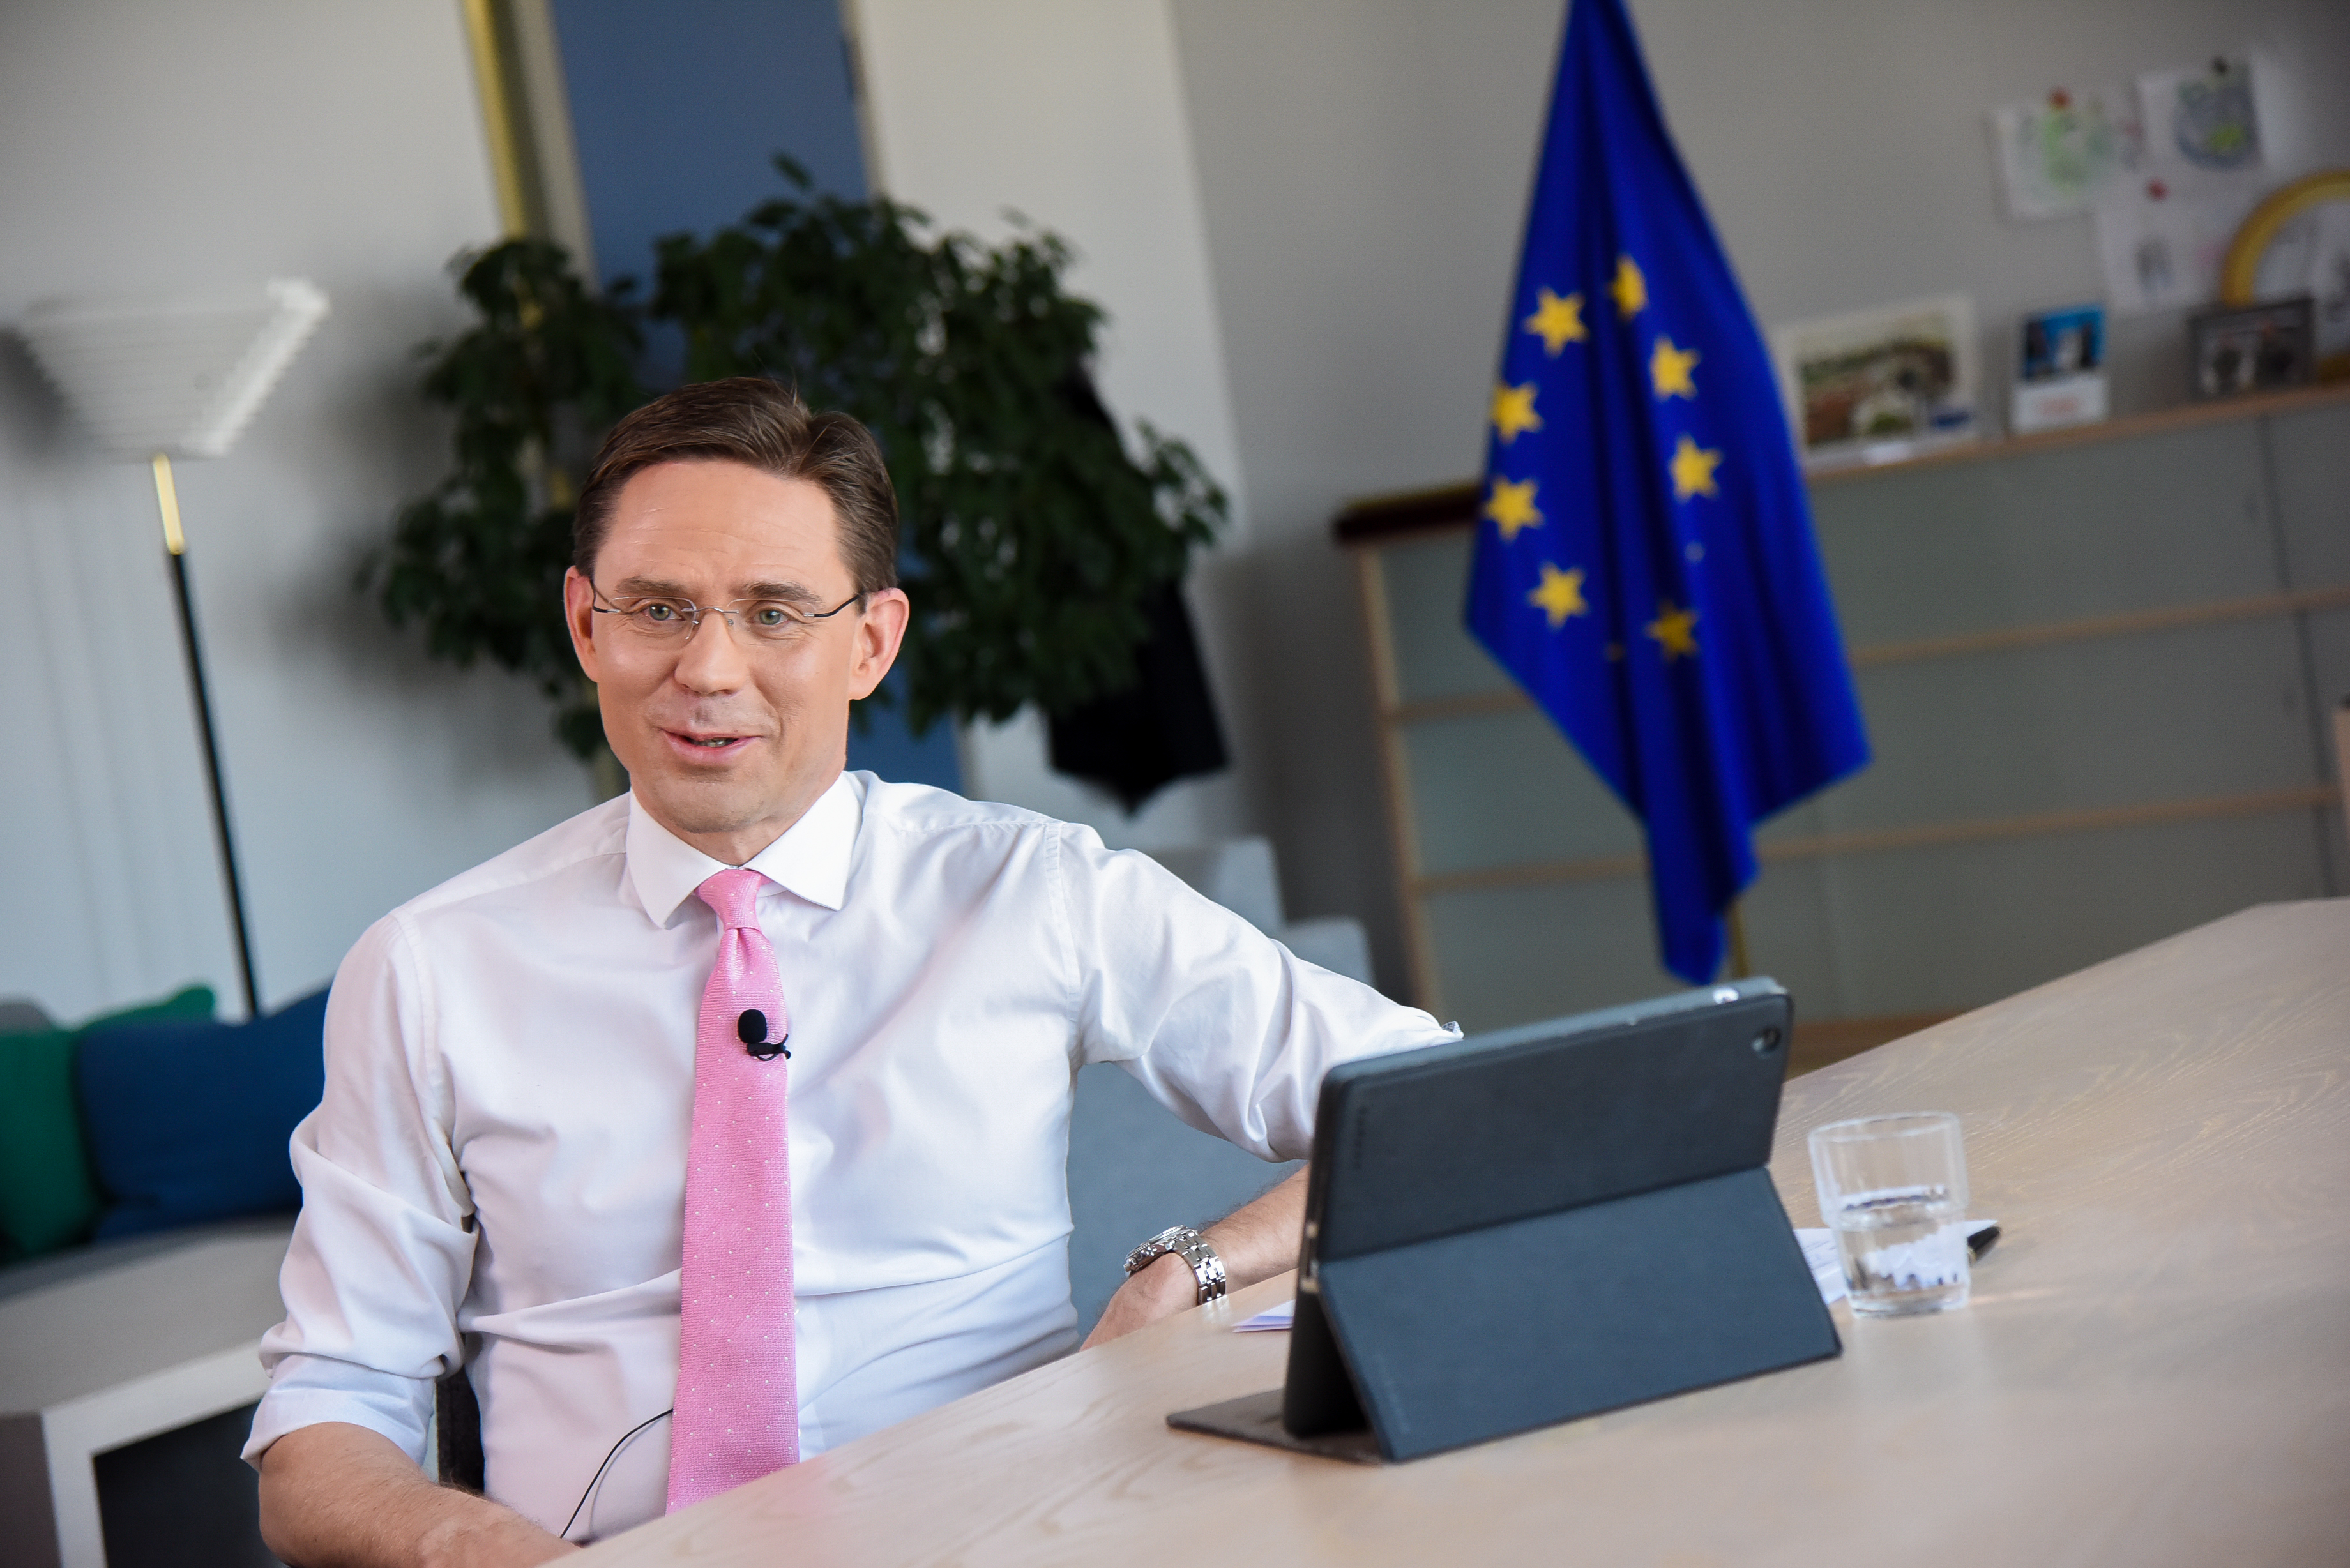 Citizens 39 dialogue in helsinki with vice president jyrki katainen an coimisi n eorpach - European commission office ...